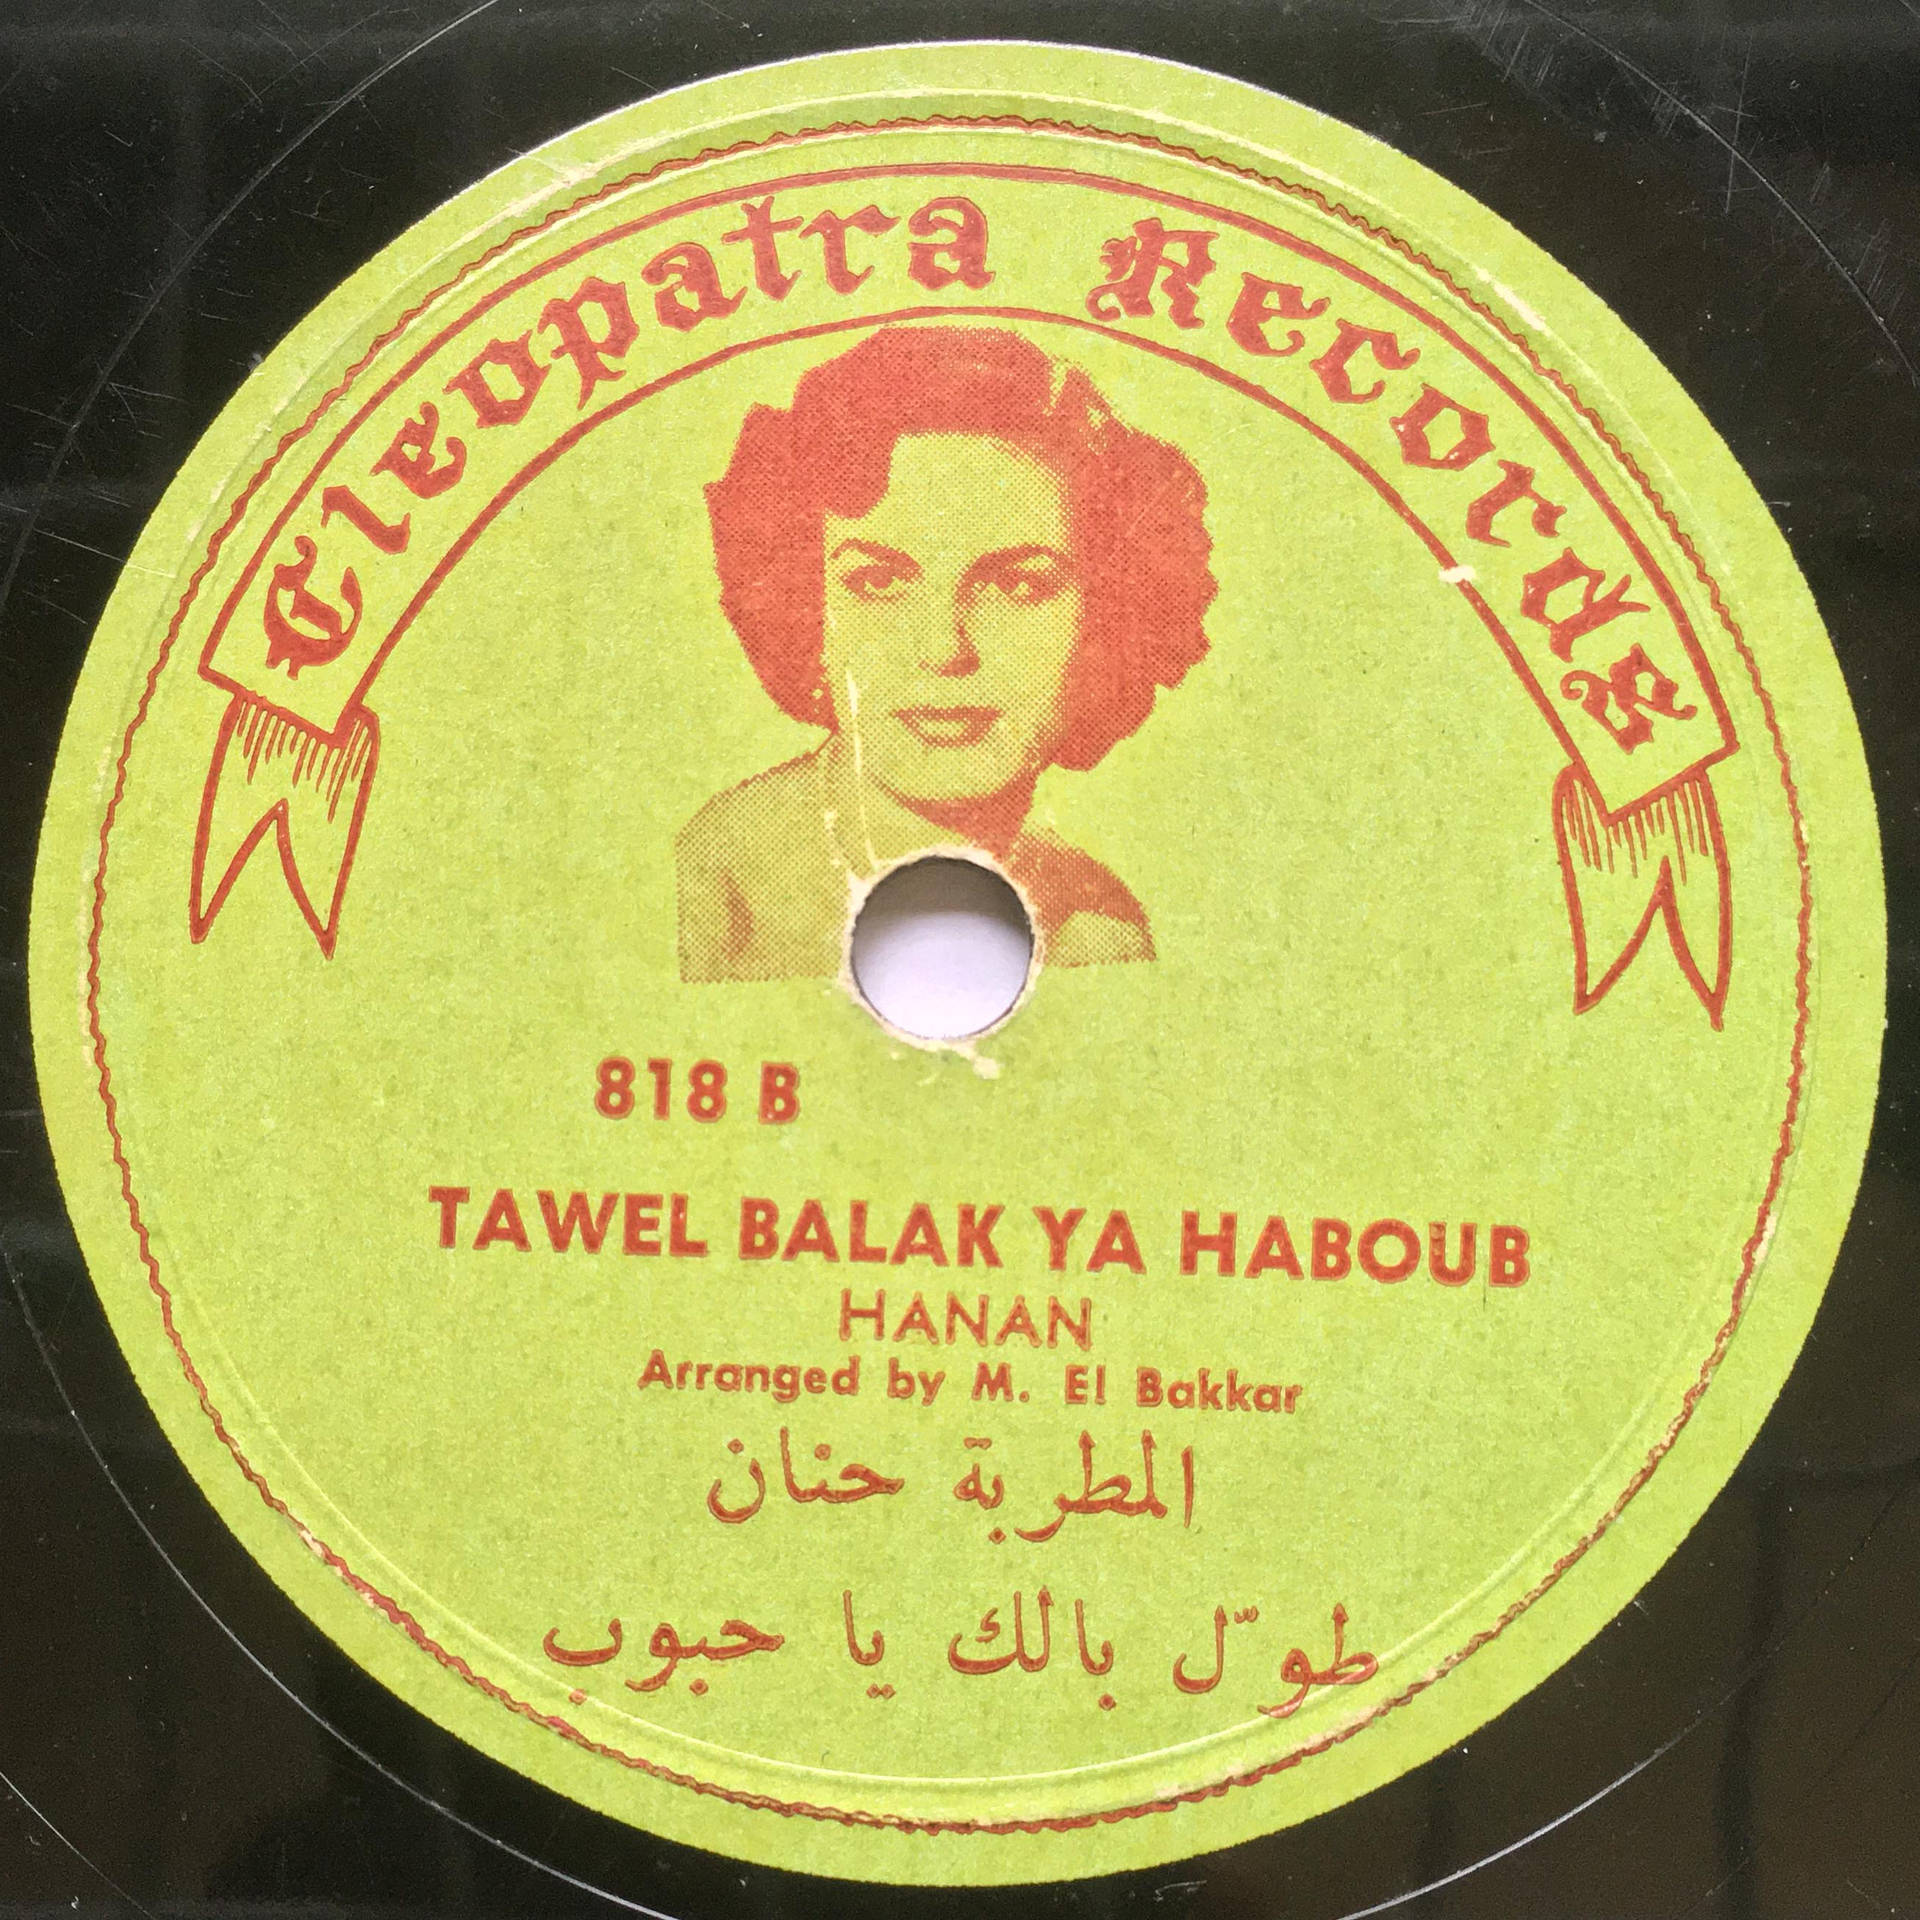 78 RPM Cleopatra Records label featuring singer Hanan. Courtesy of the Richard M. Breaux Collection.